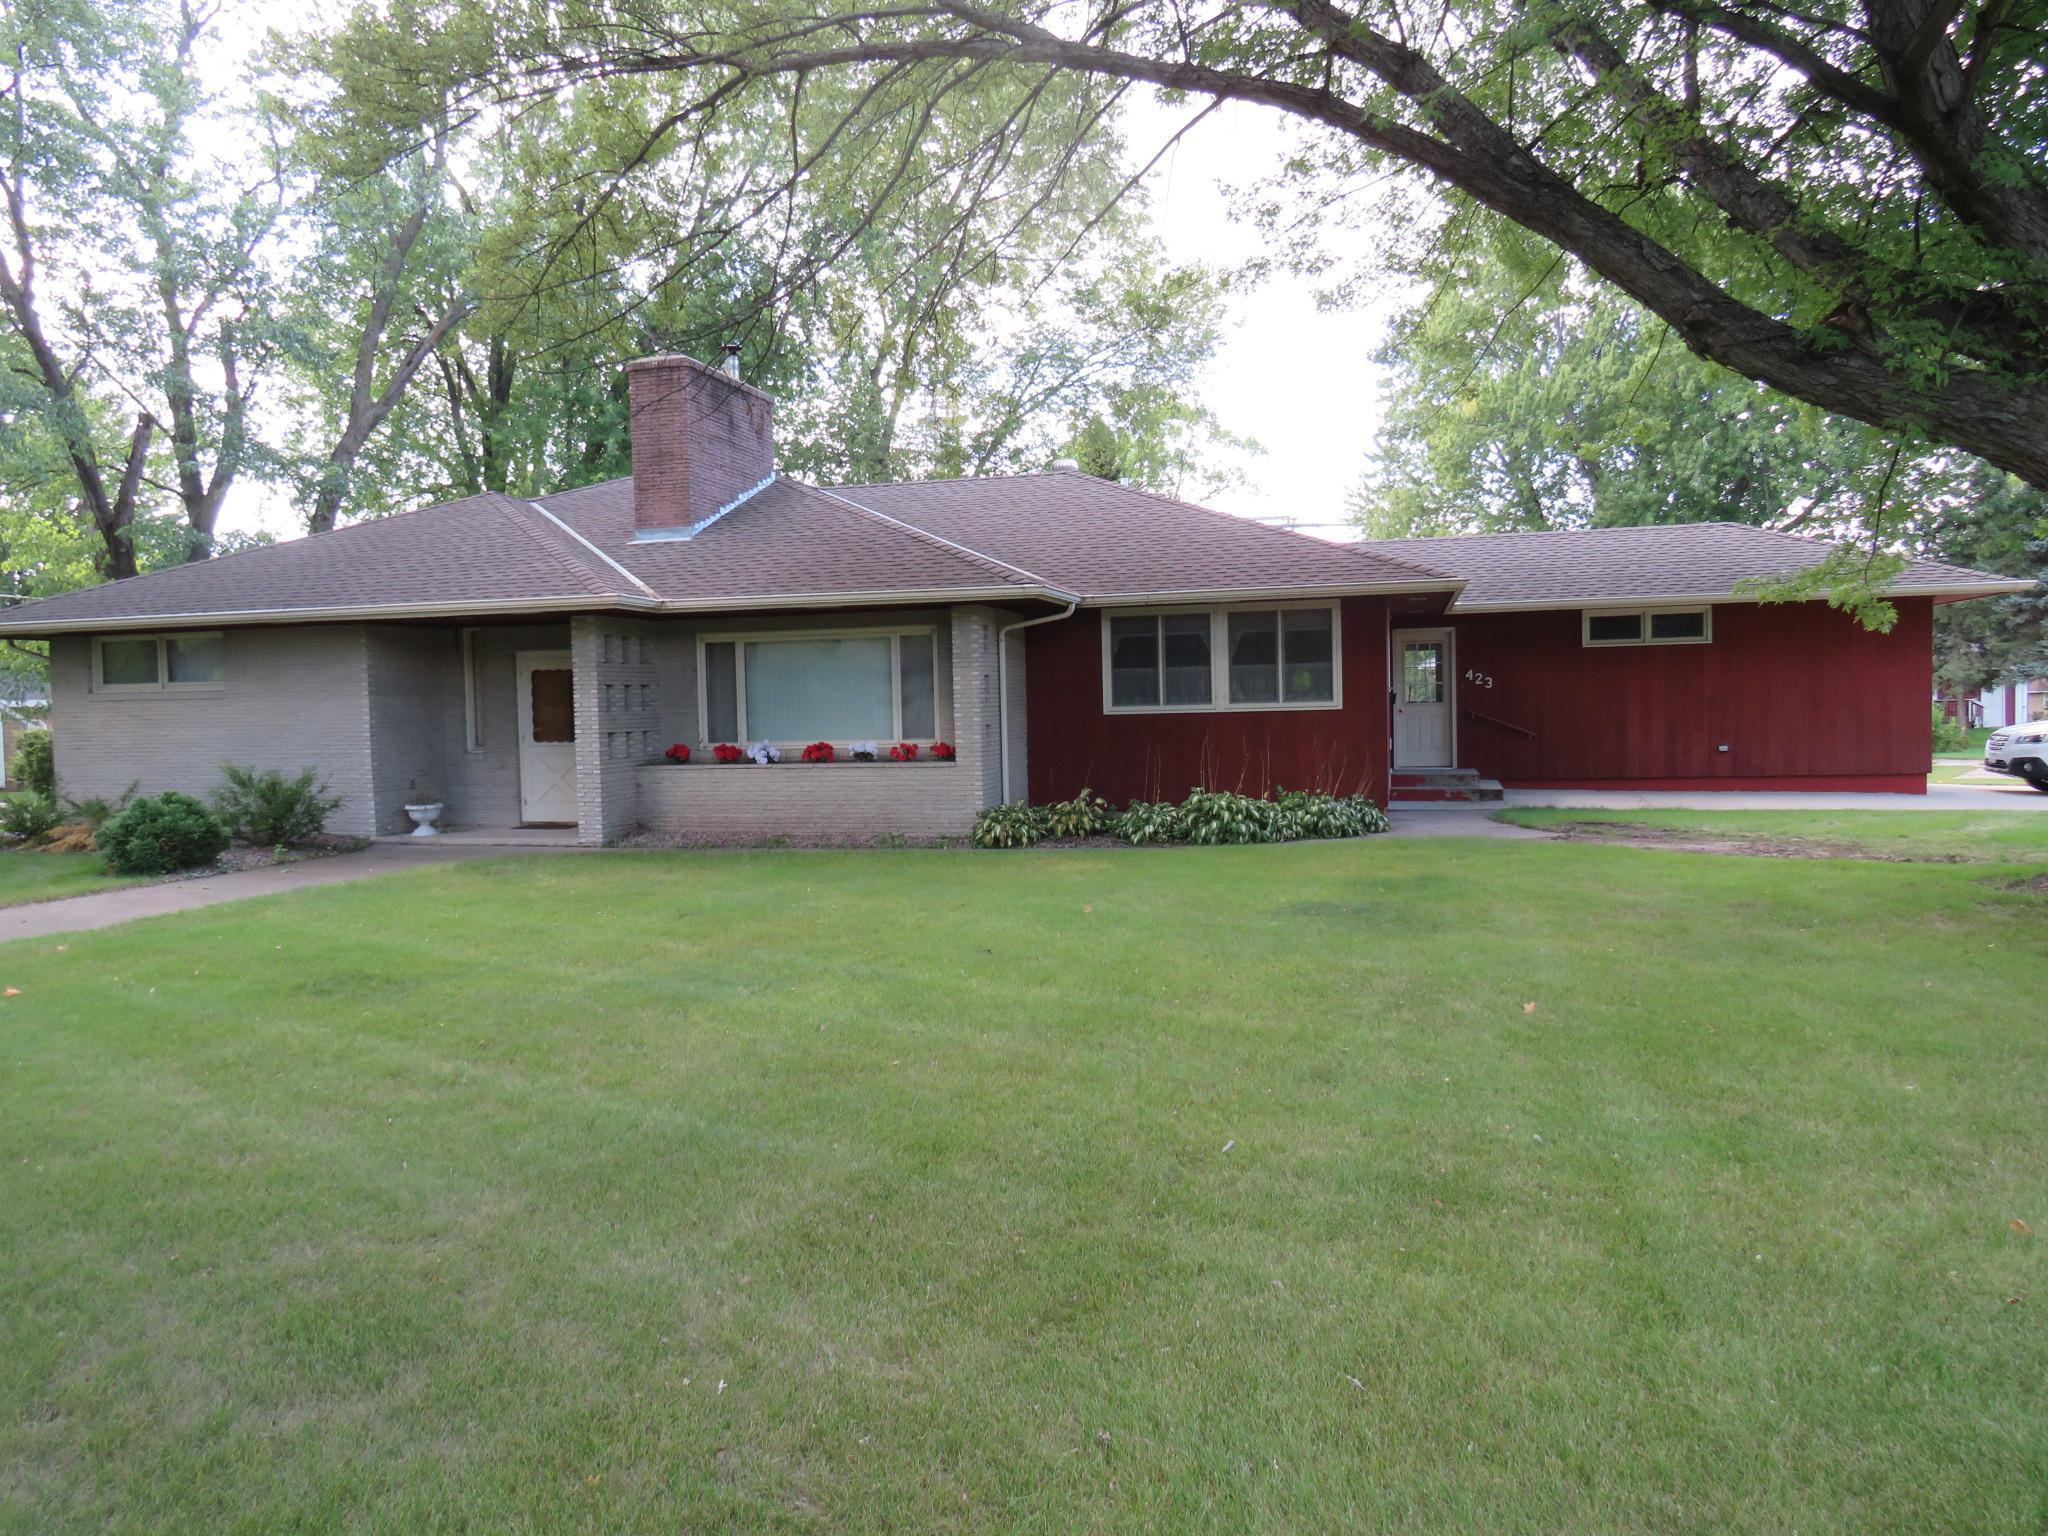 423 S Gaulke Street Property Photo - Appleton, MN real estate listing